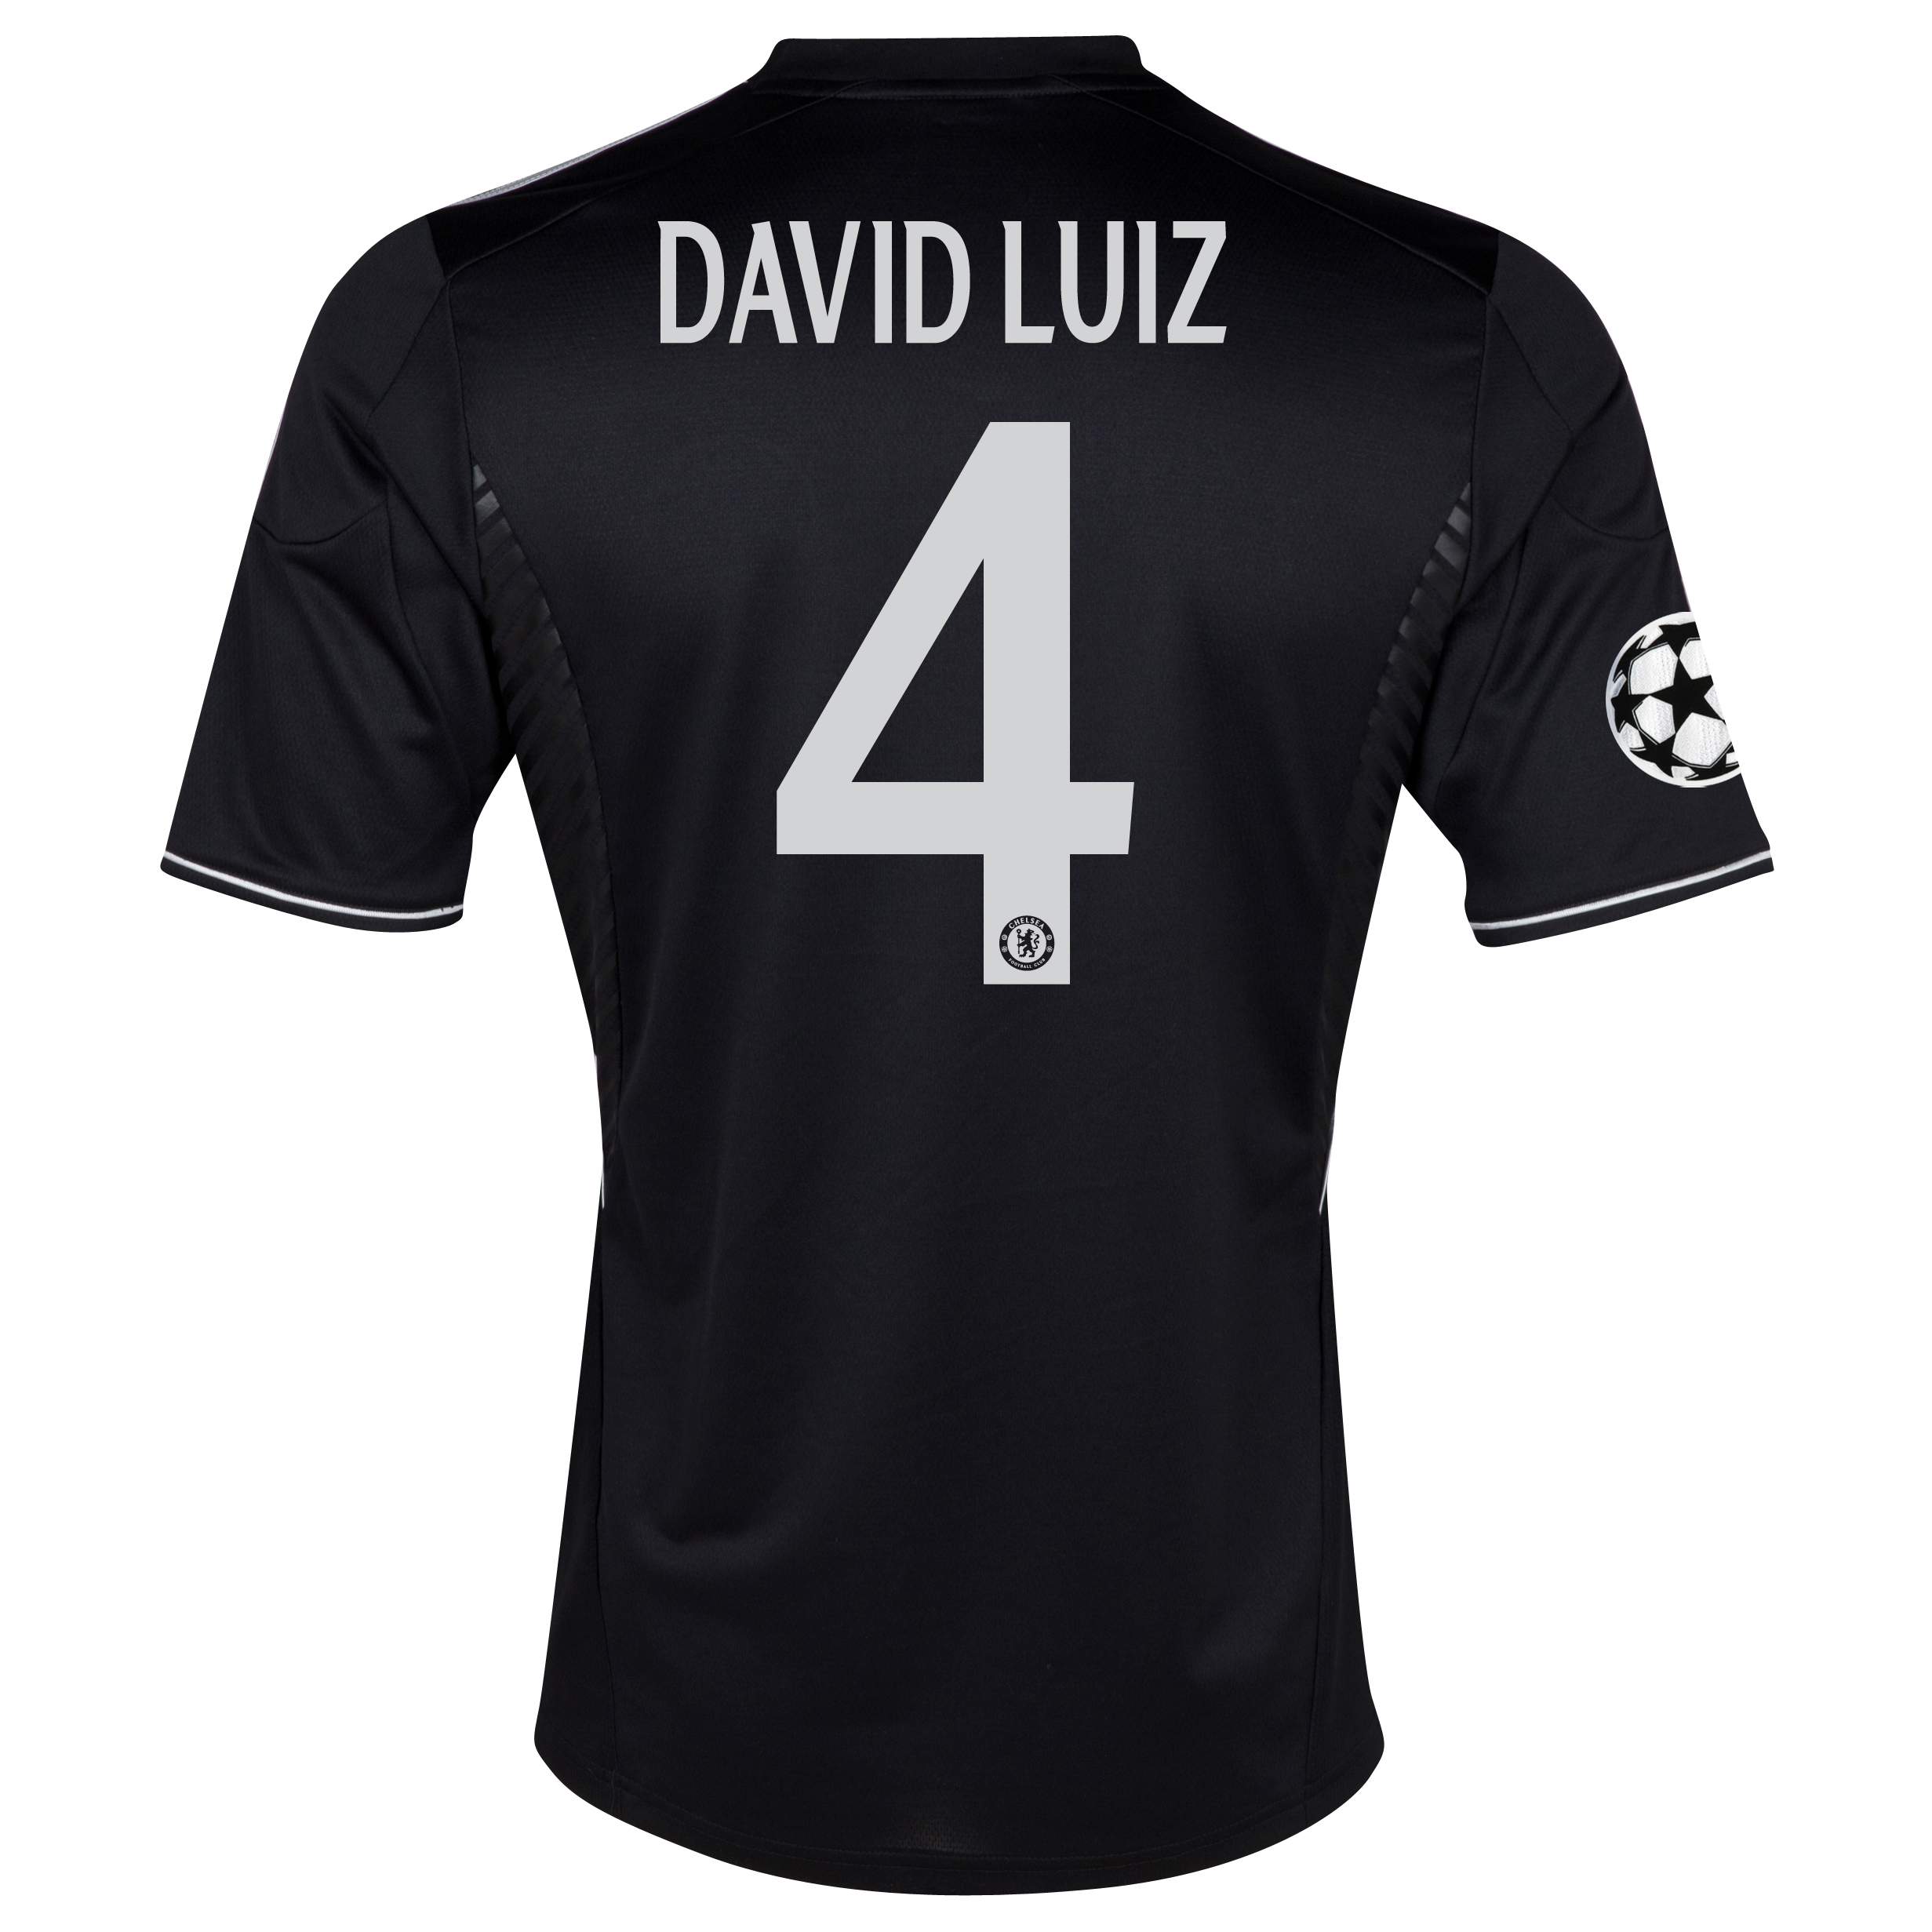 Chelsea UEFA Champions League Third Shirt 2013/14 with David Luiz 4 printing